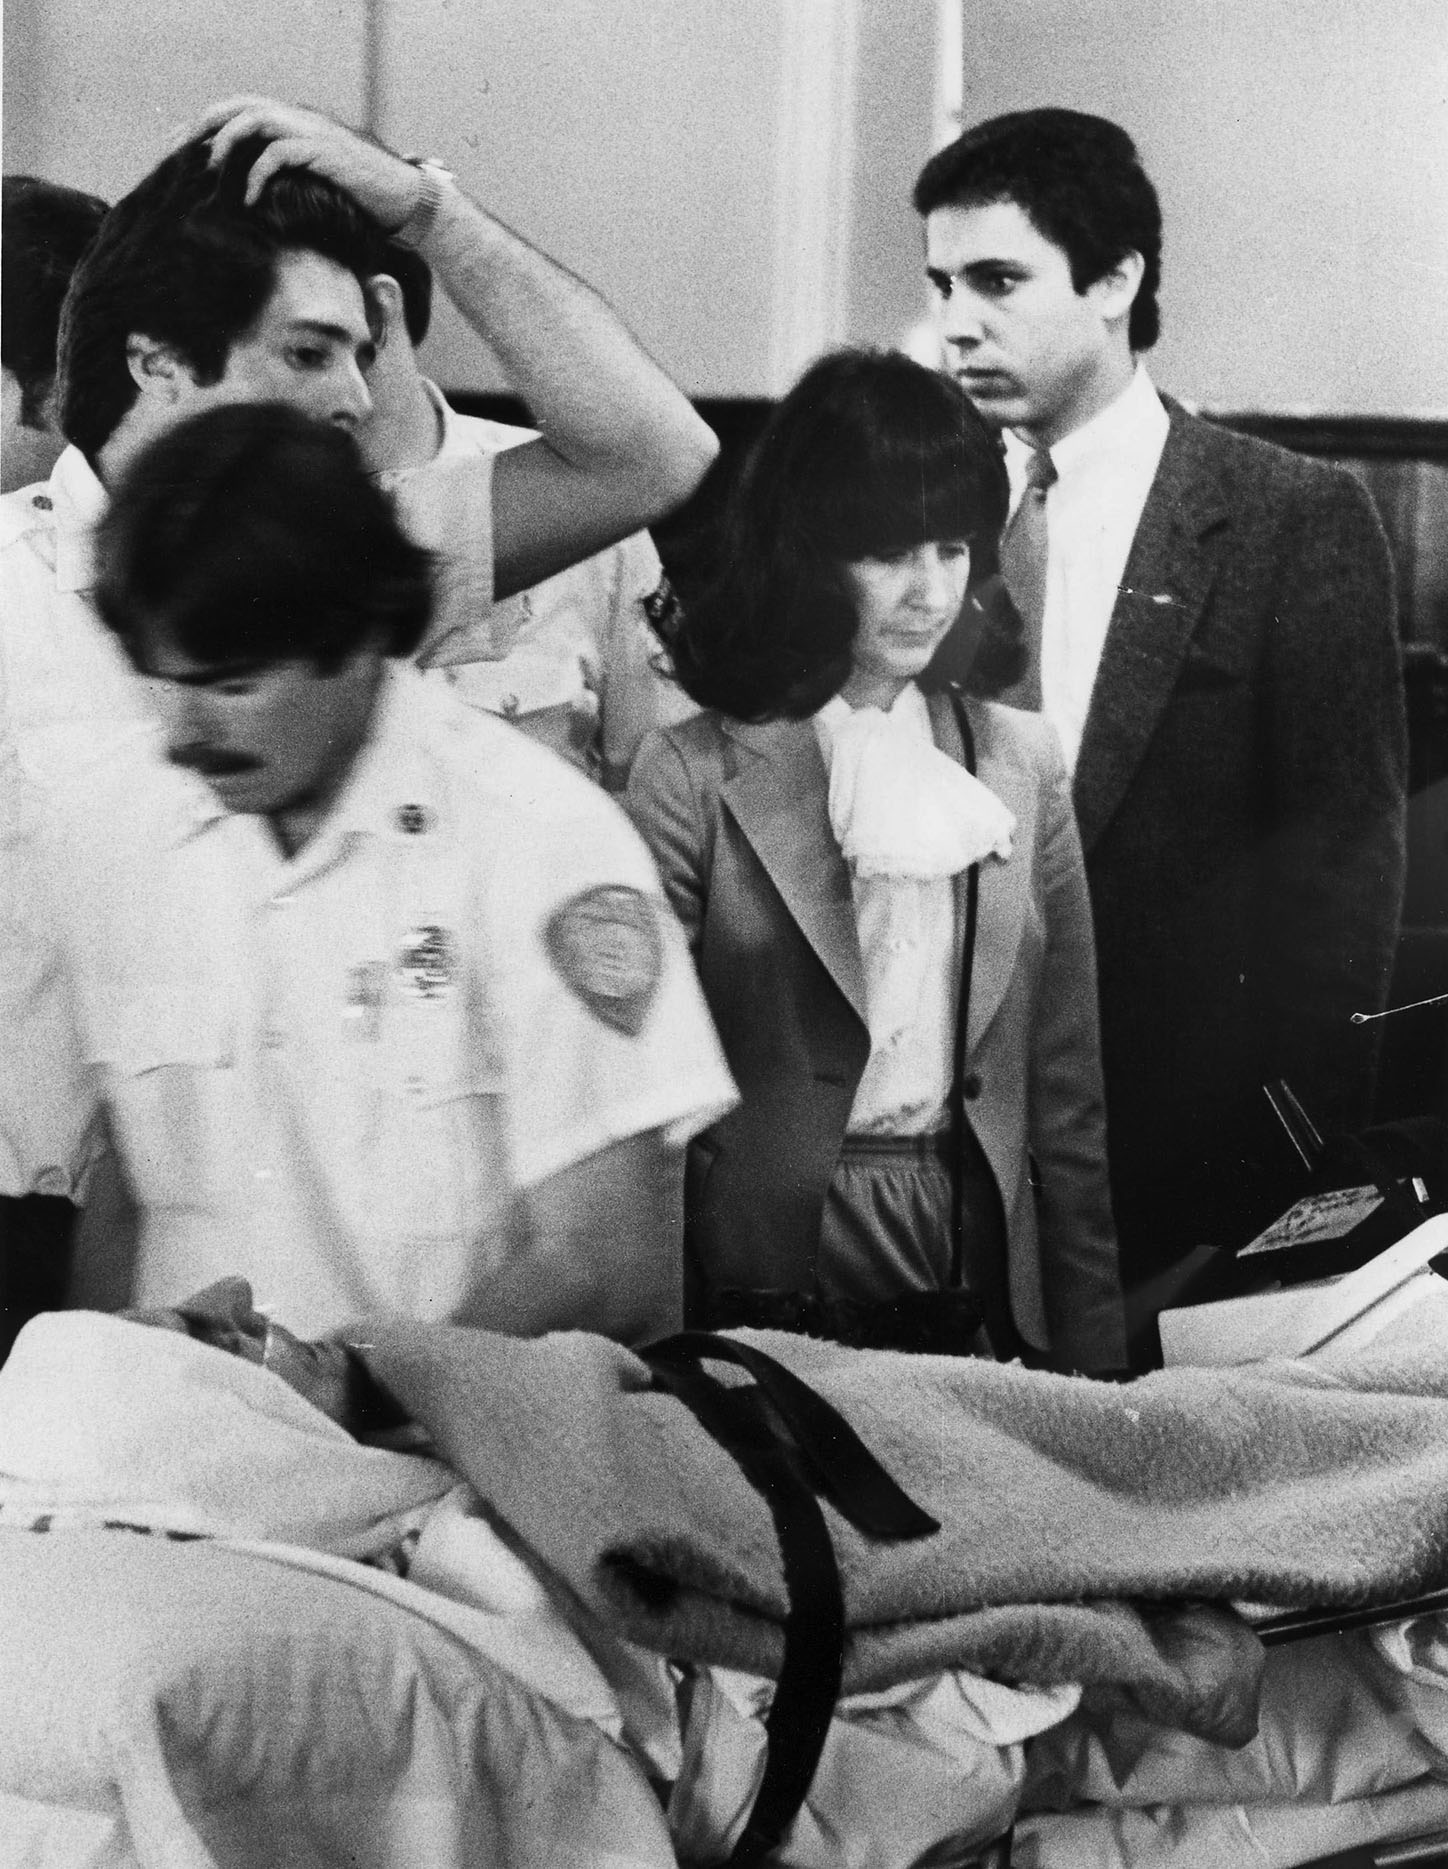 A pale Raymond Patriarca, swathed in sheets and carried on a stretcher, is accompanied by Dr. Barbara Roberts and other medical personnel at his arraignment in March 1981.  Courtesy of The Providence Journal.